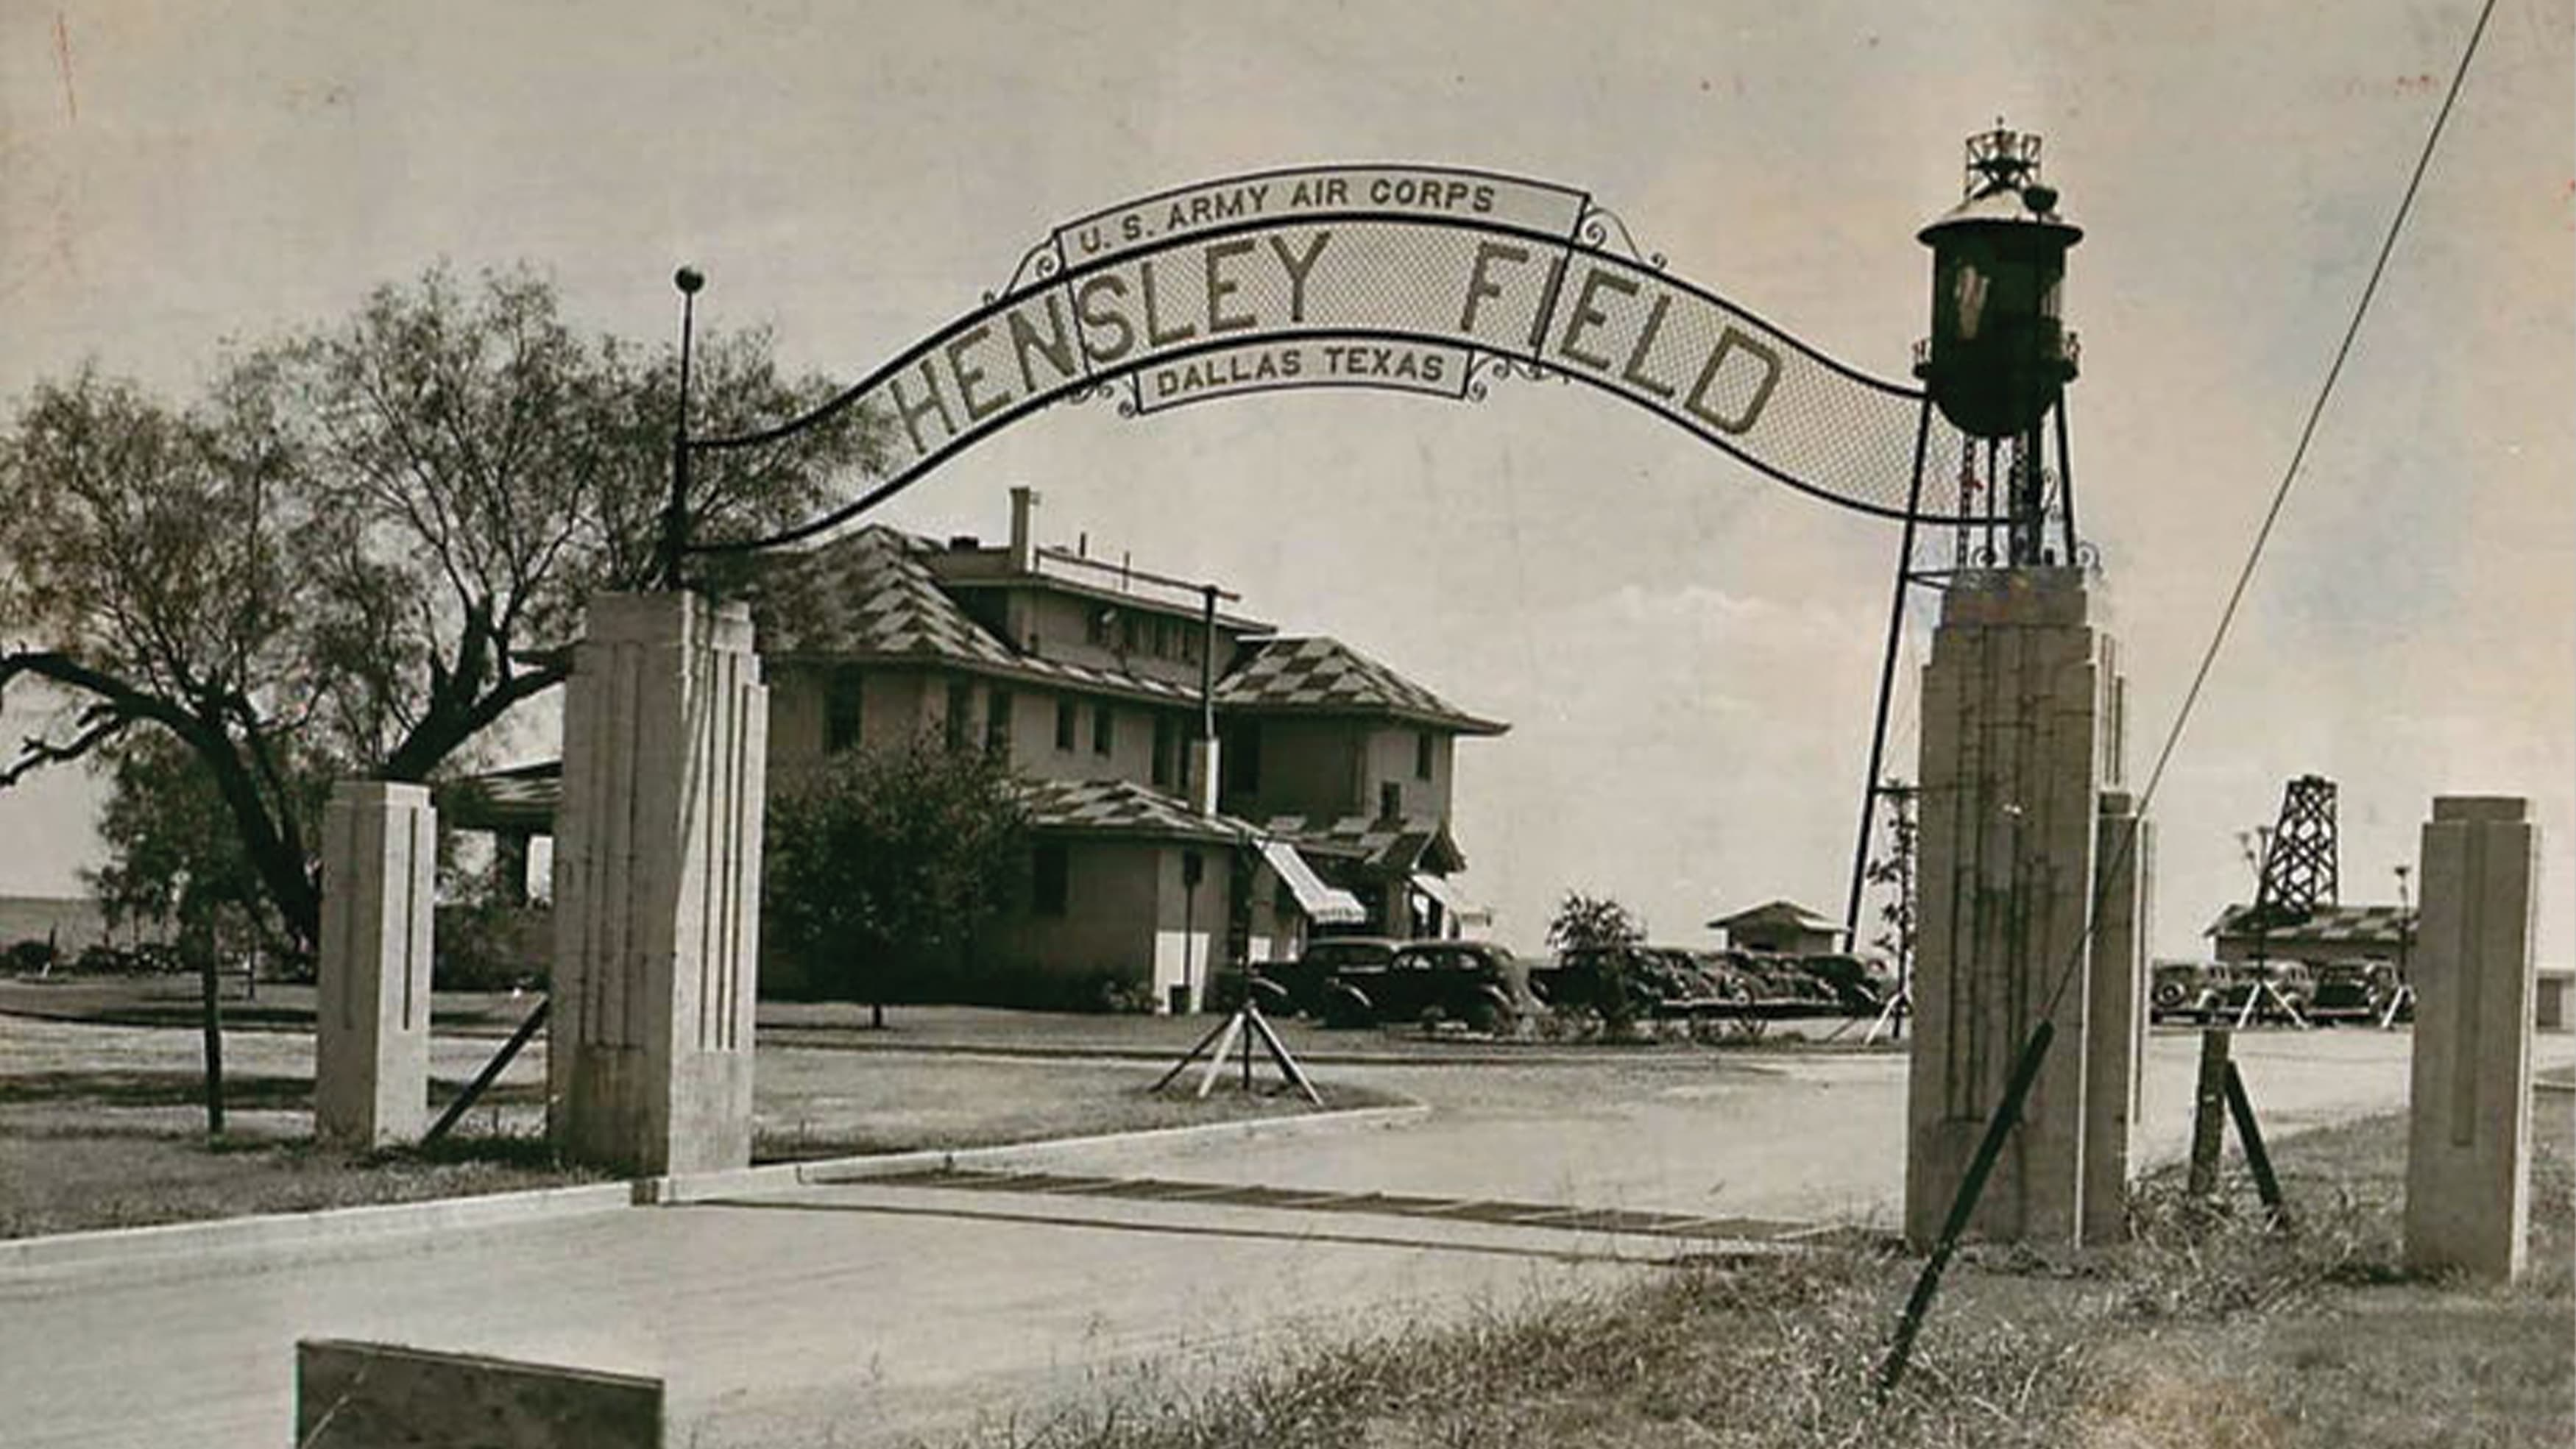 Historic entry gateways signage at Hensley Field in Dallas, Texas.